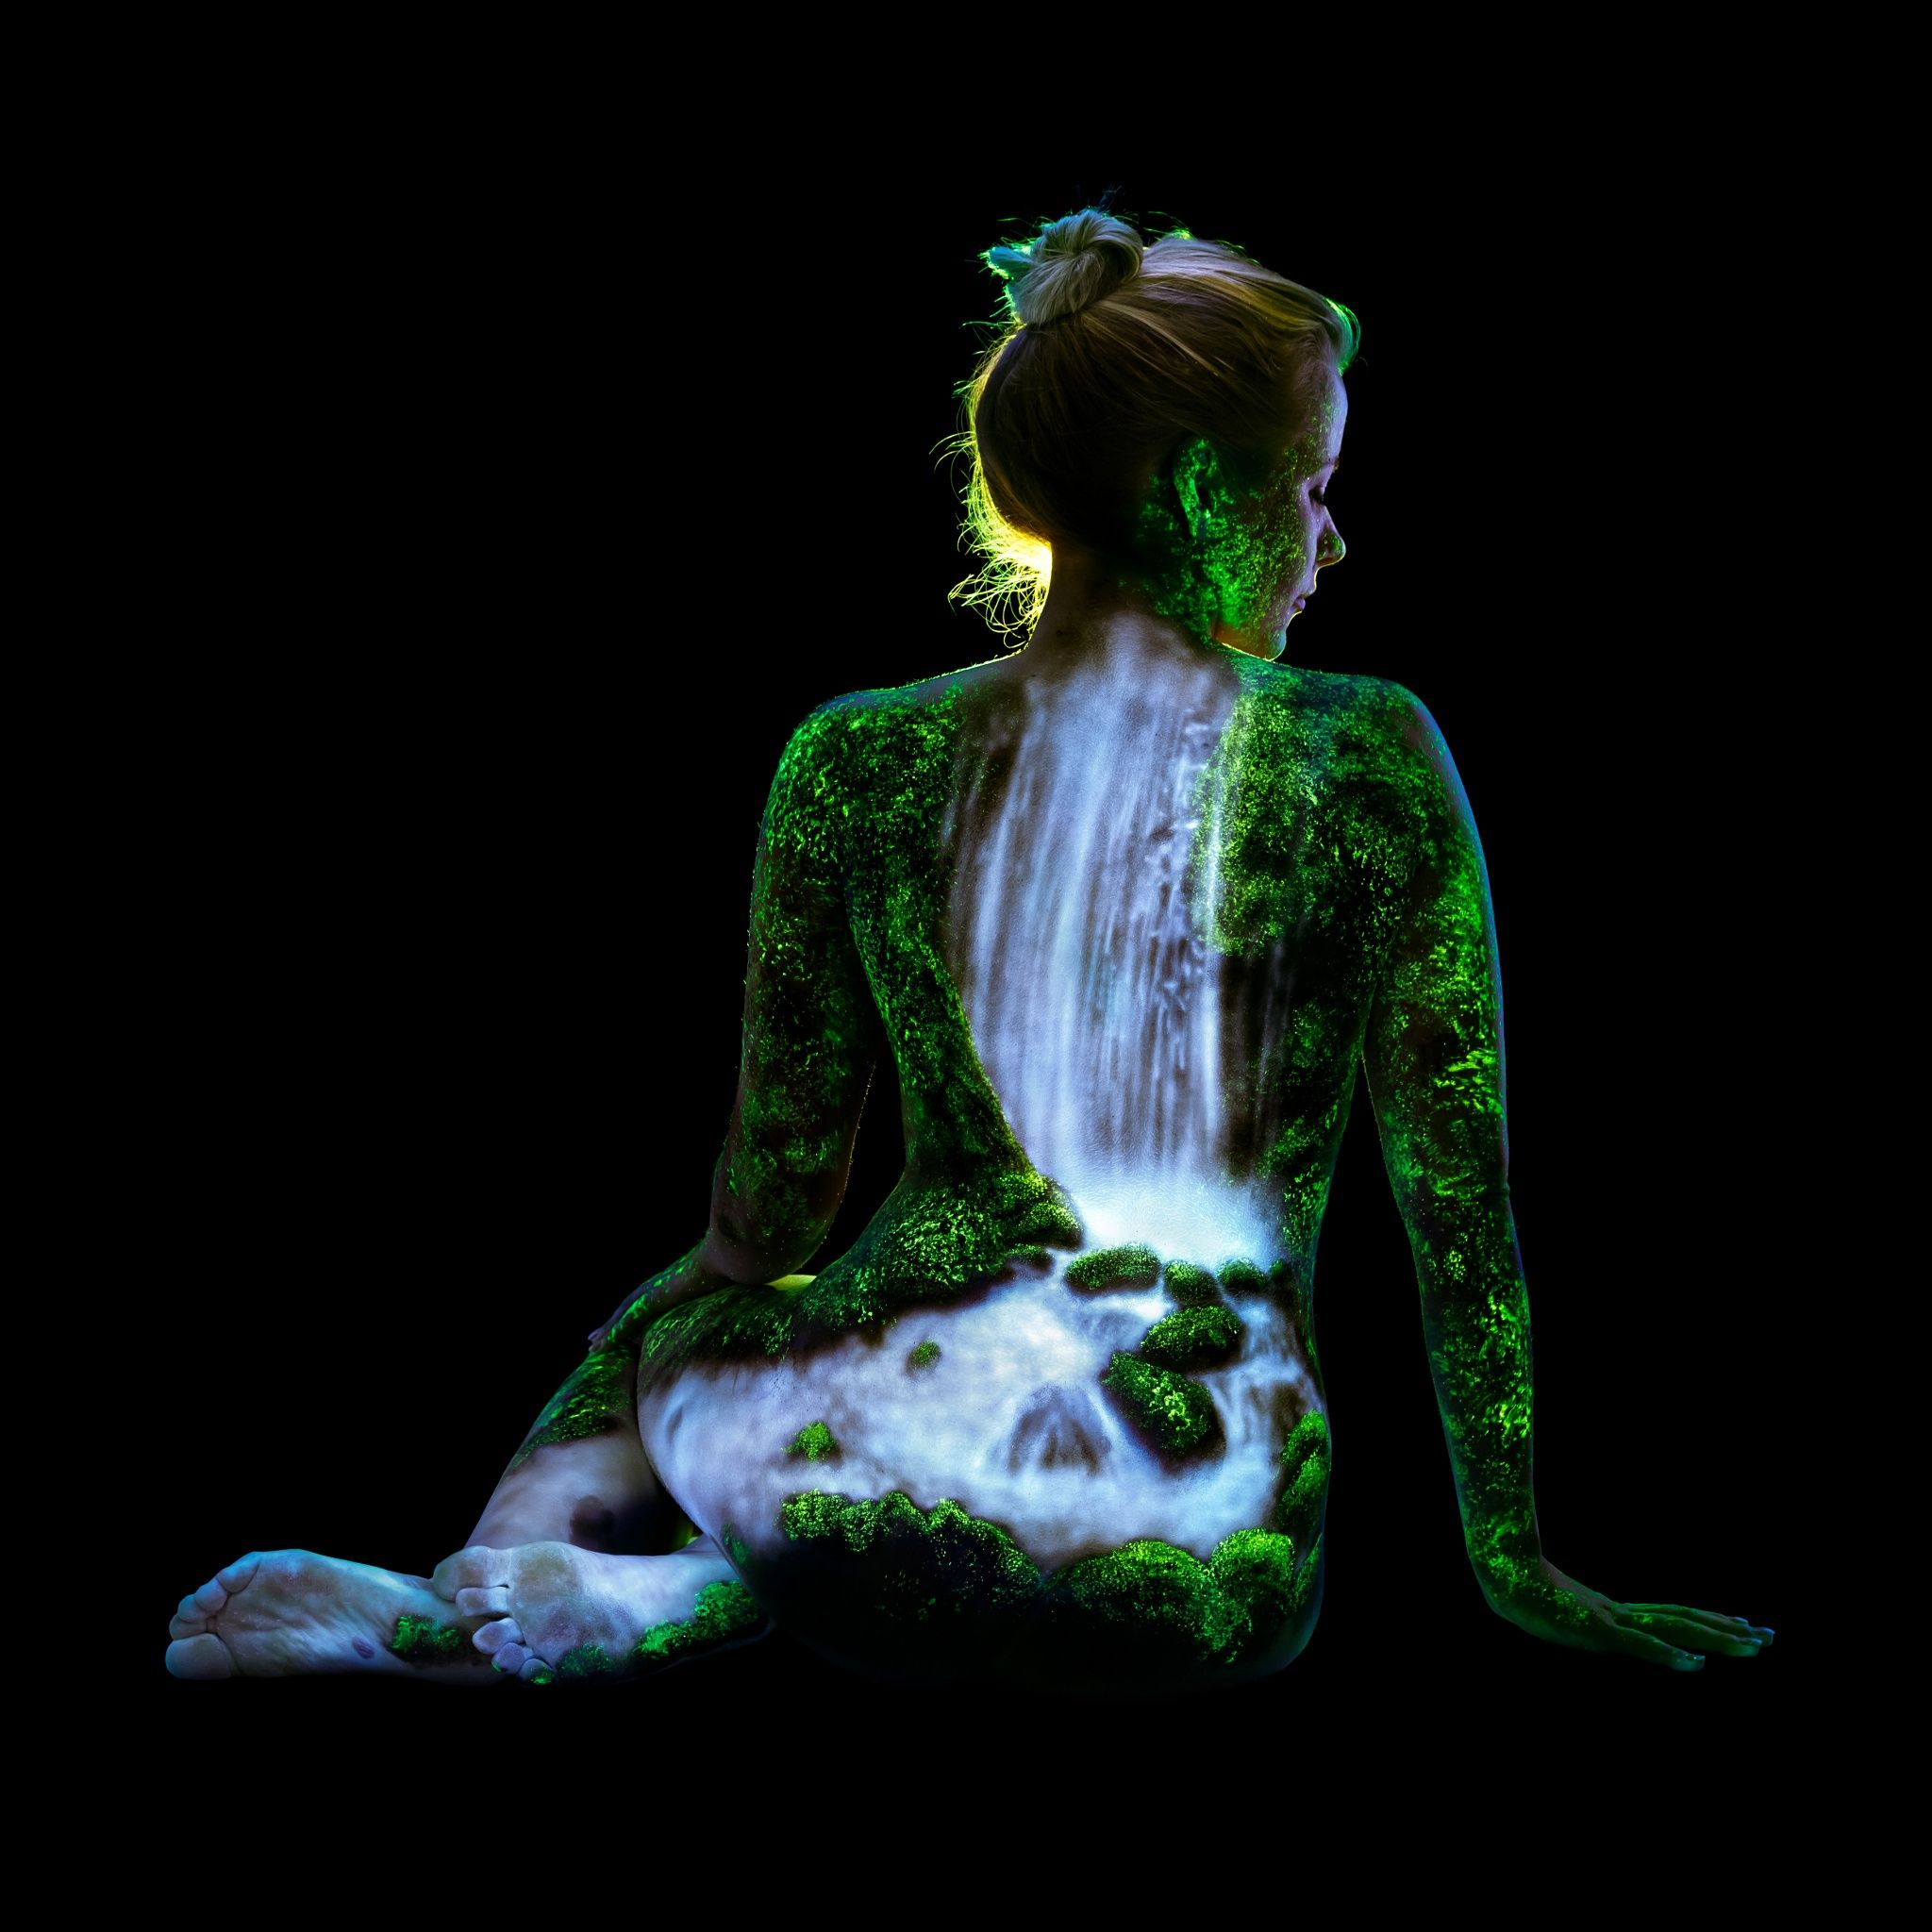 Katie's Rain Forrest Waterfall by John Poppleton on 500px